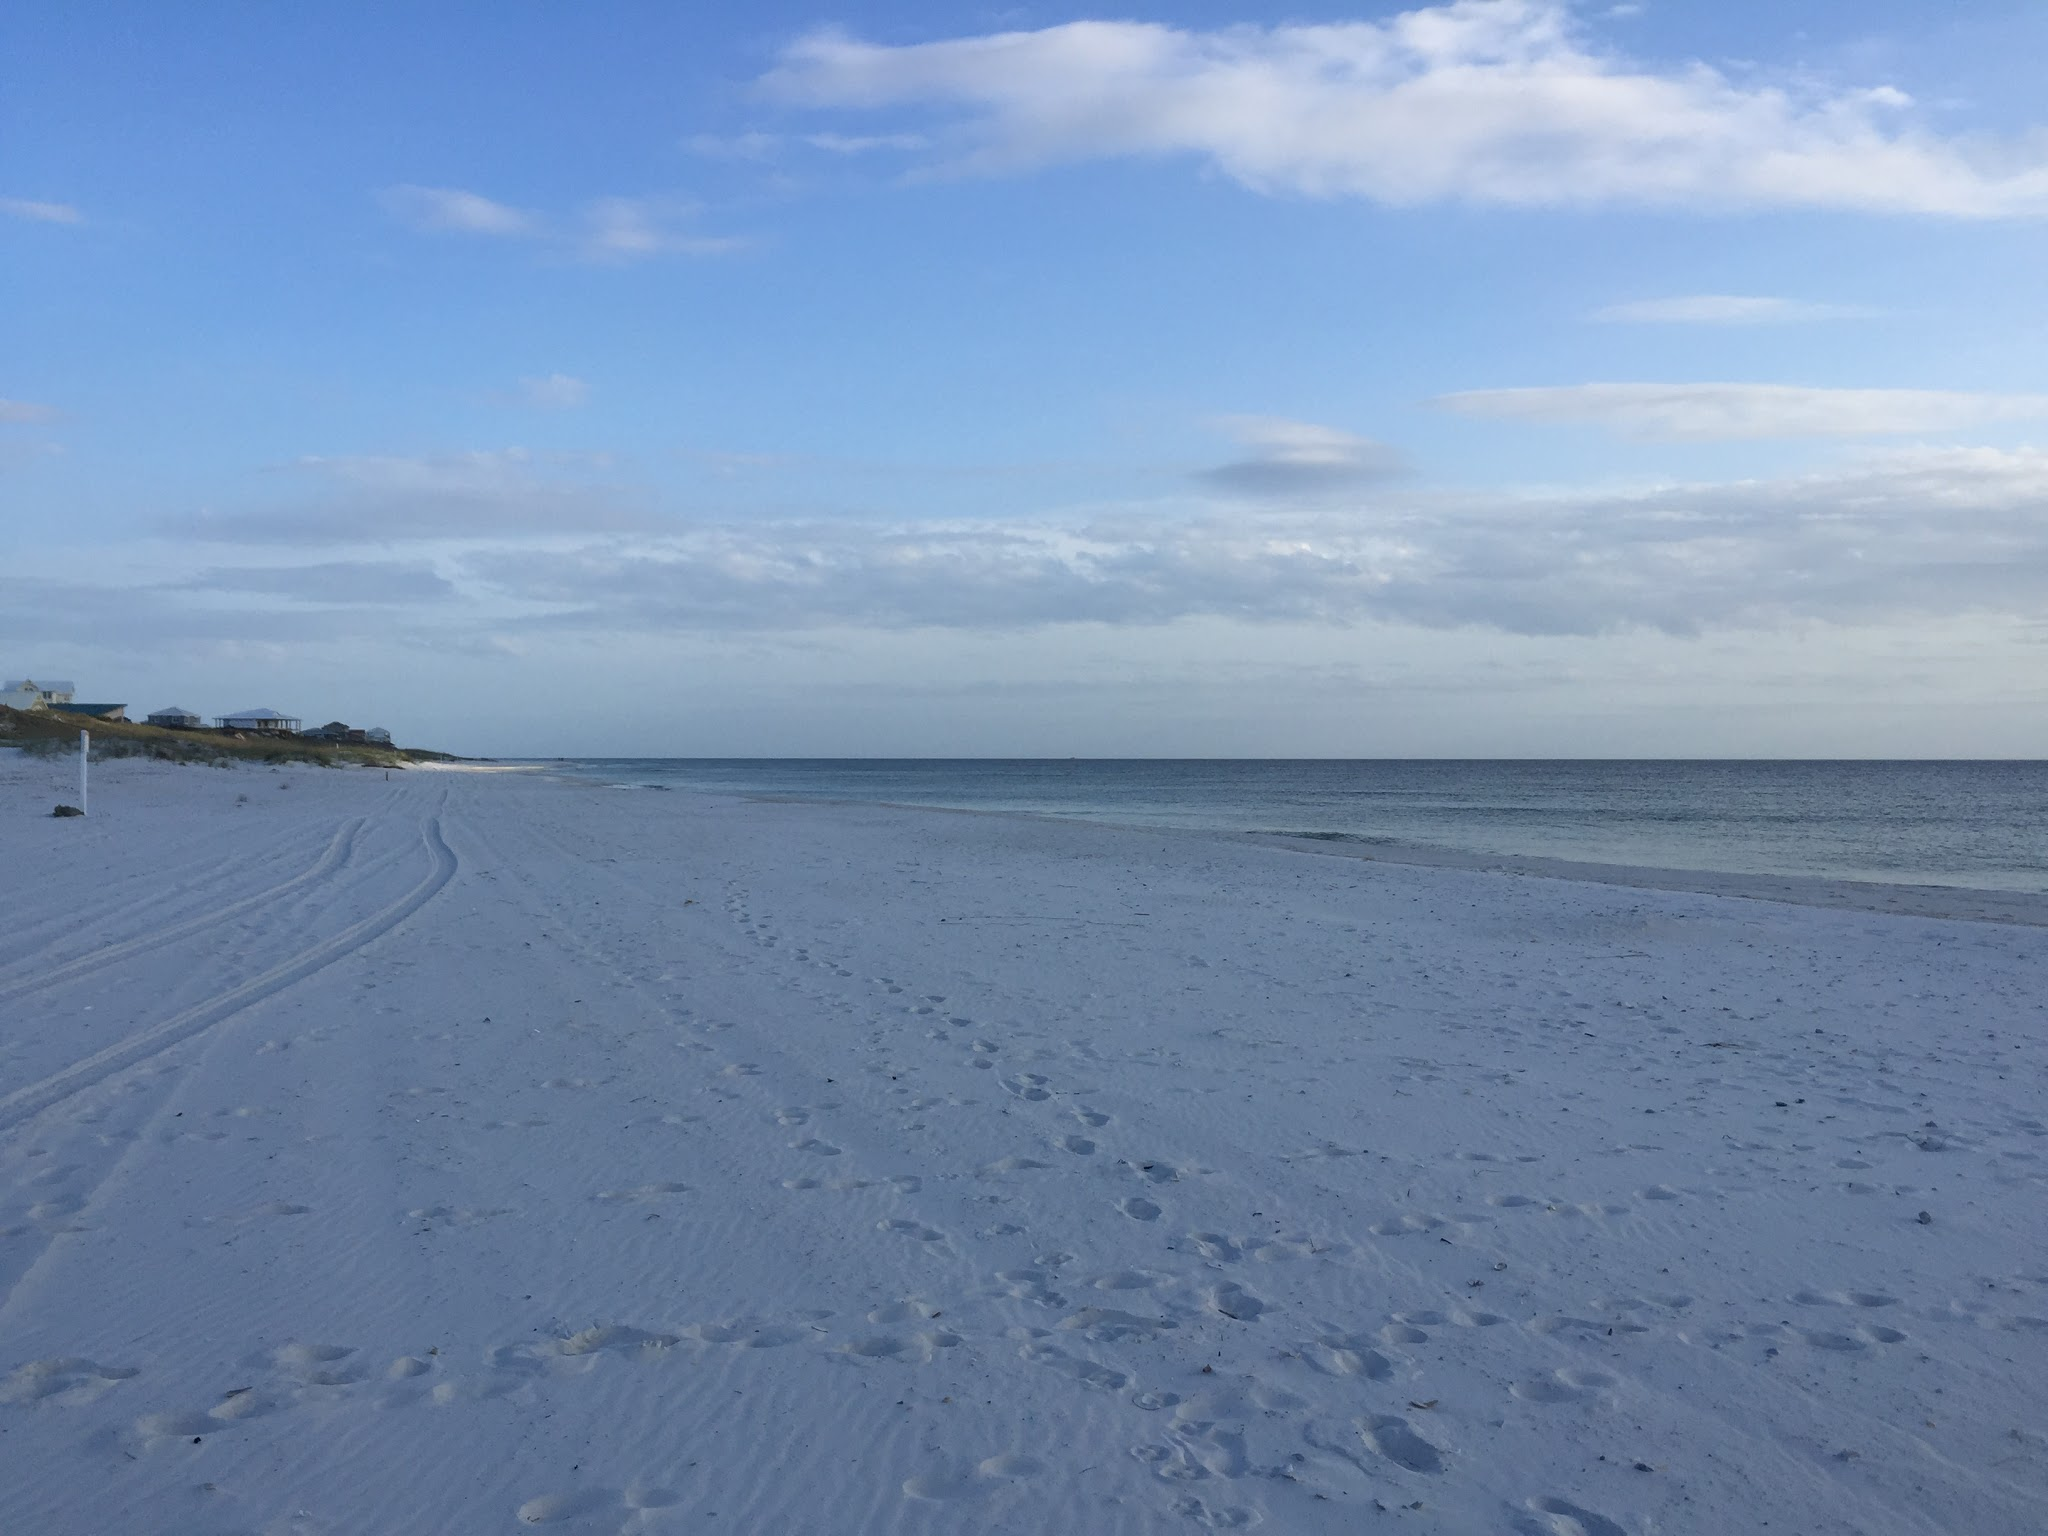 Photo: Beach looking left from Tropical Breeze